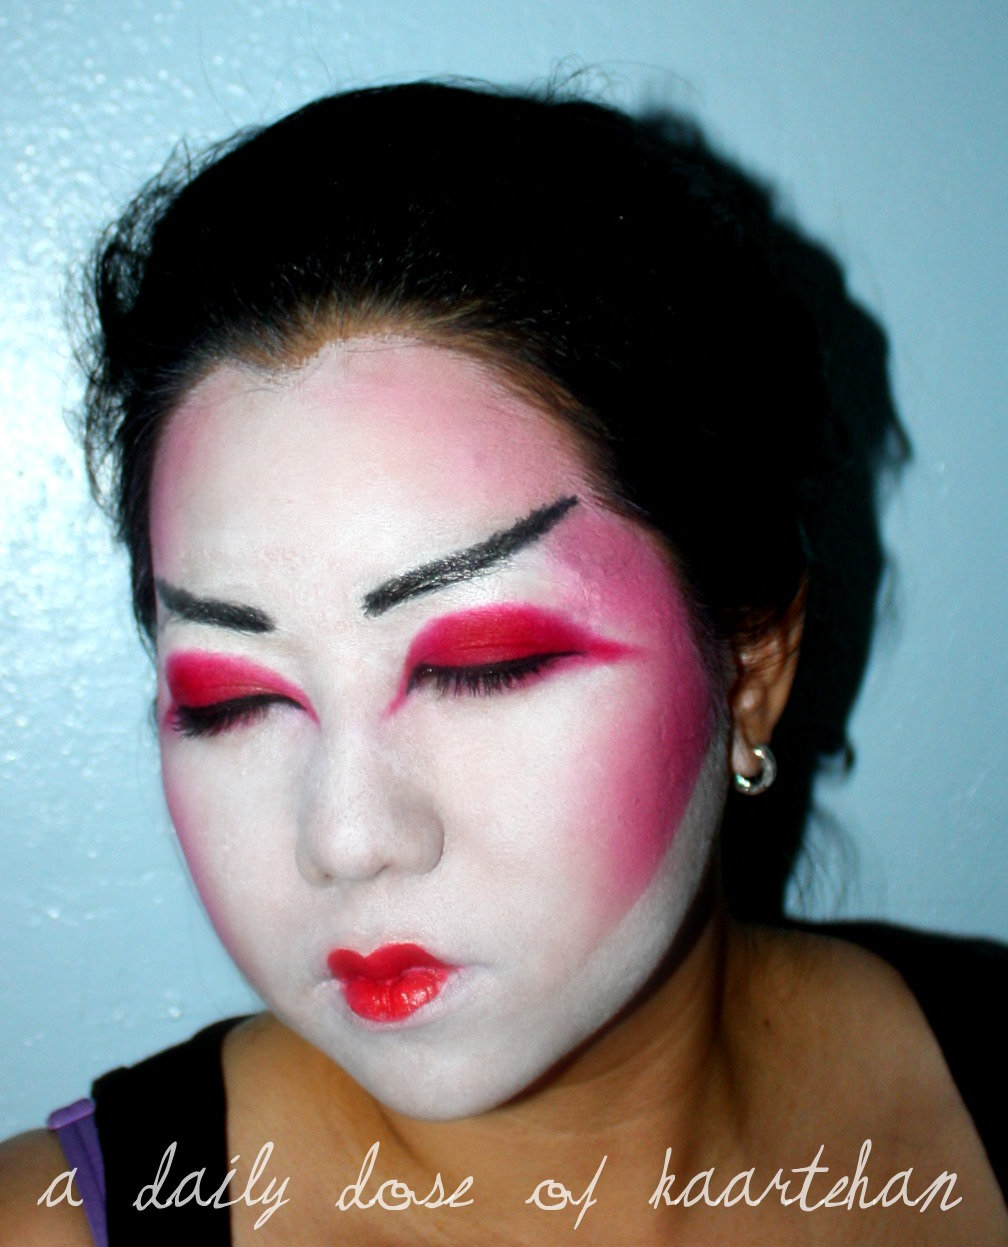 a daily dose of kaartehan halloween look geishamaiko makeup attempt